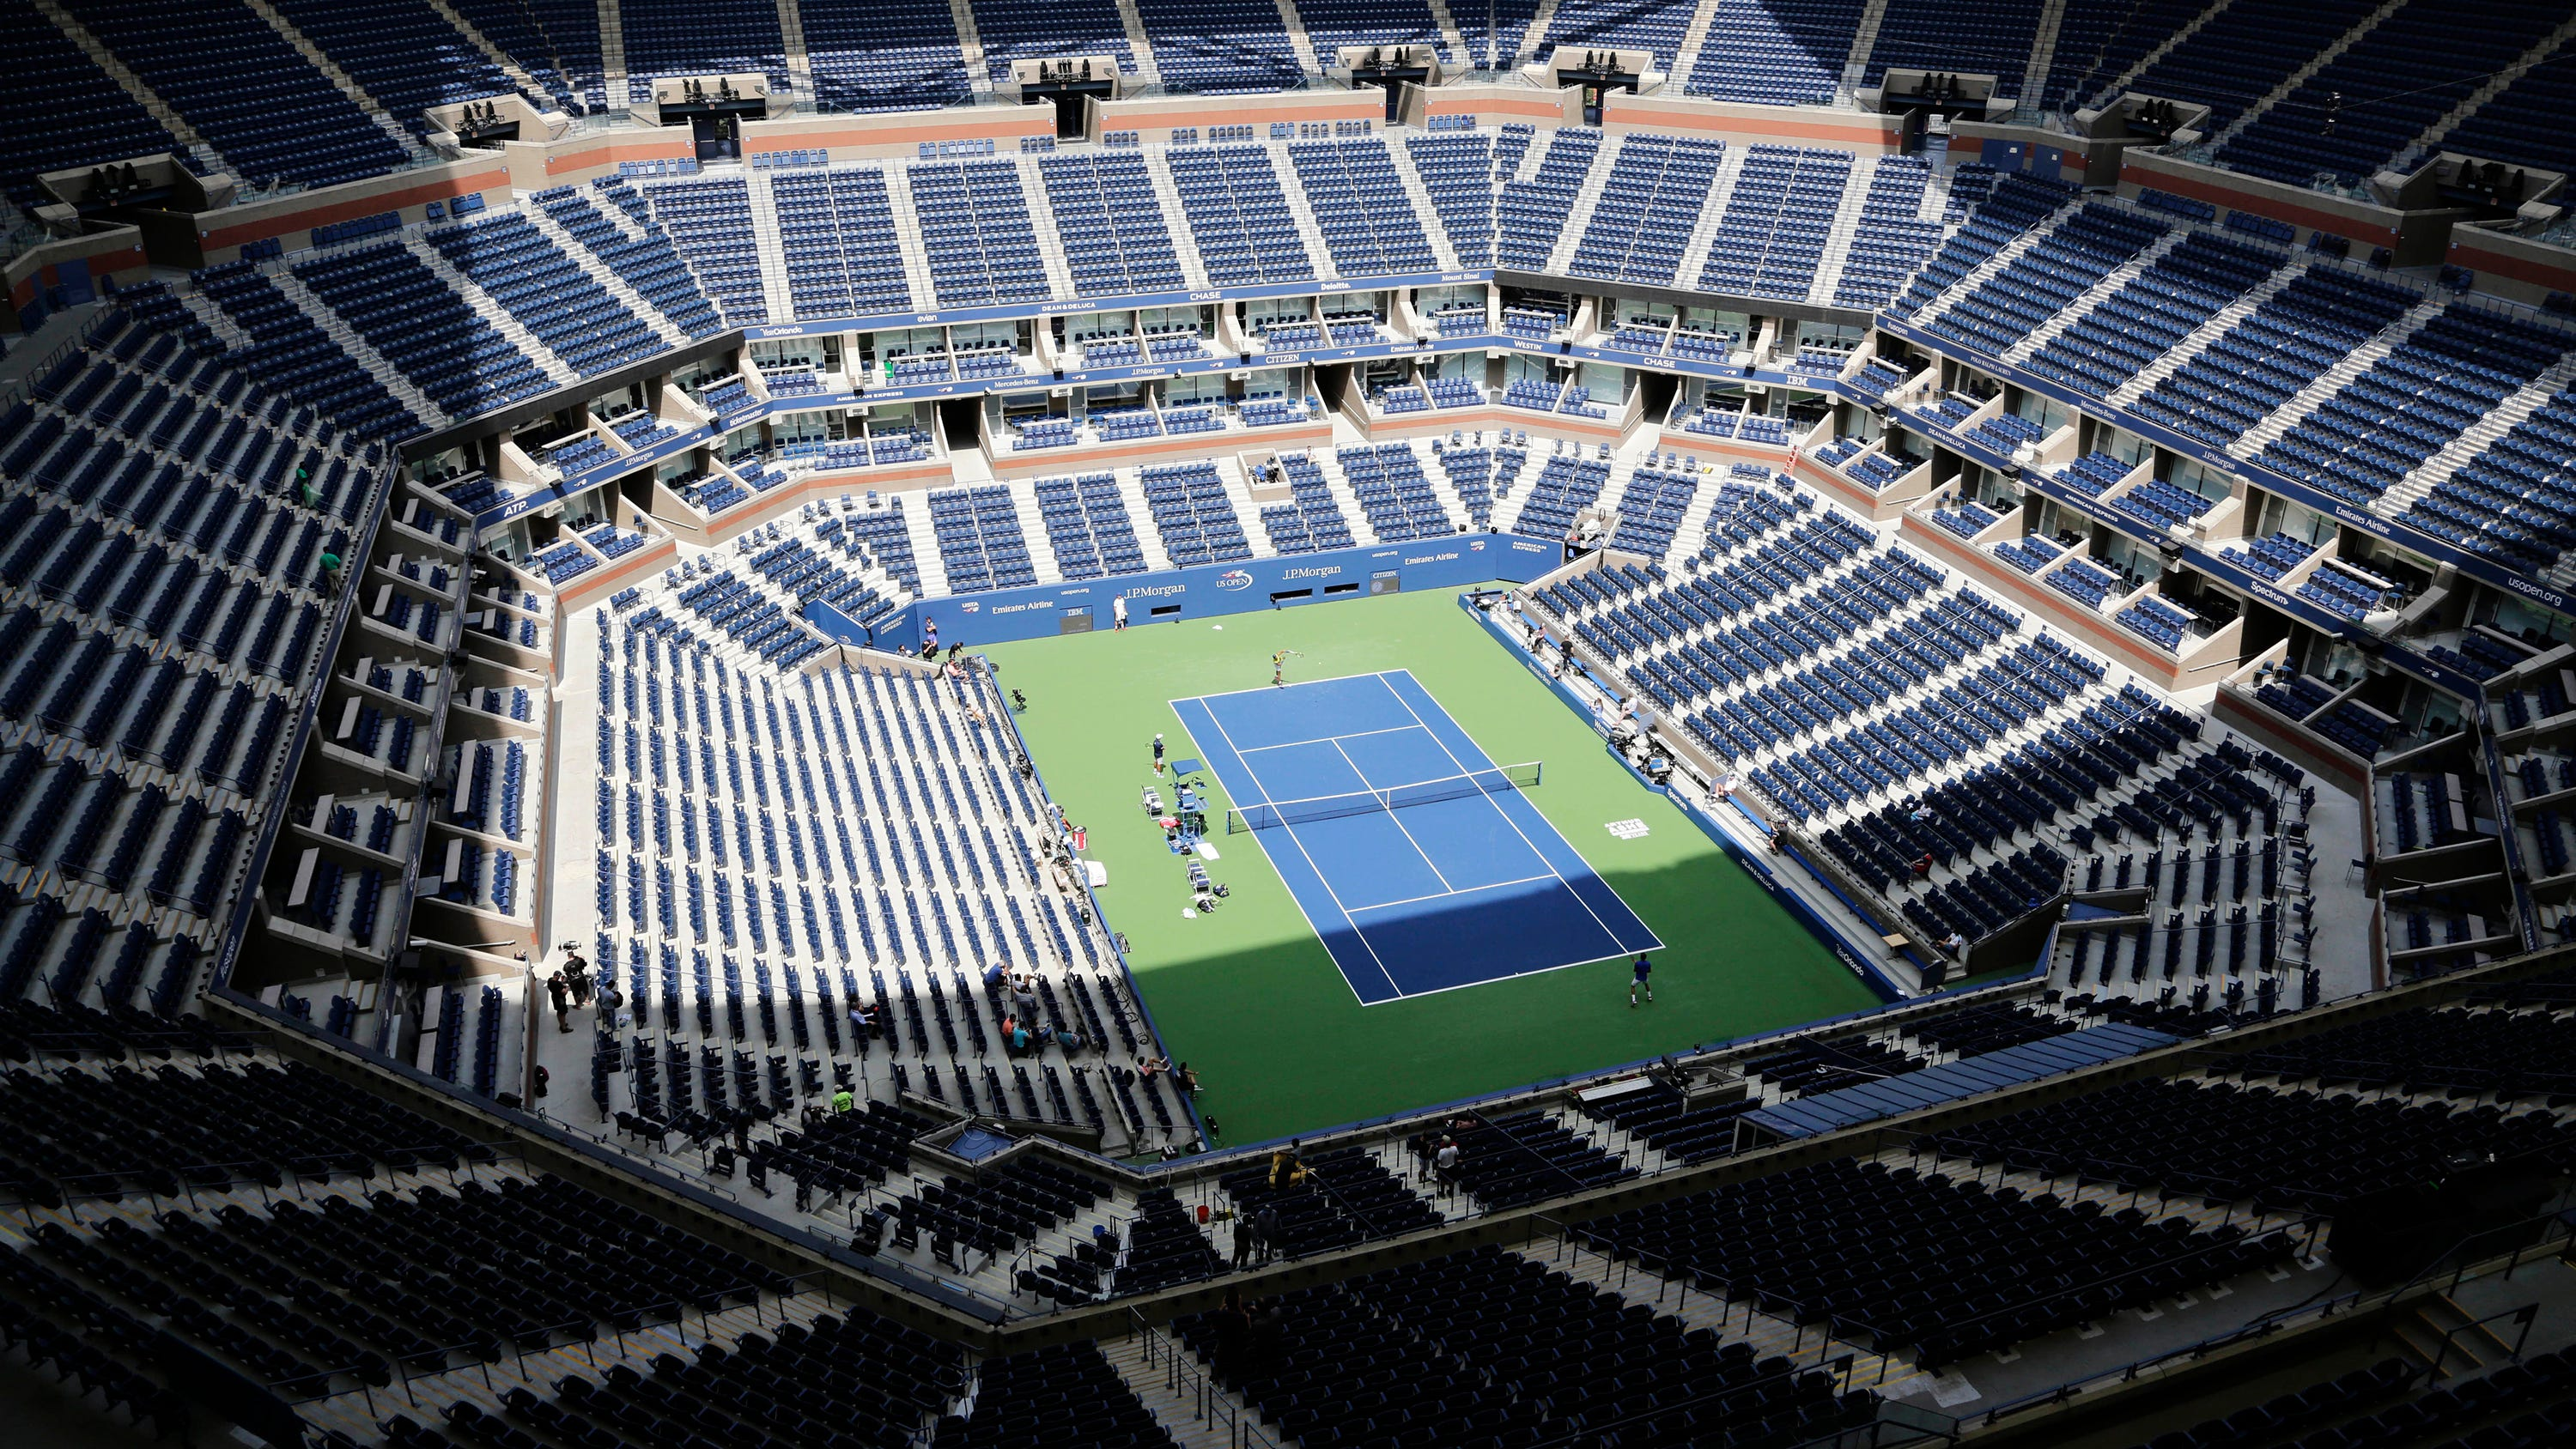 ap us open still on track tennis 1 jpg?width=3000&height=1688&fit=crop&format=pjpg&auto=webp.'